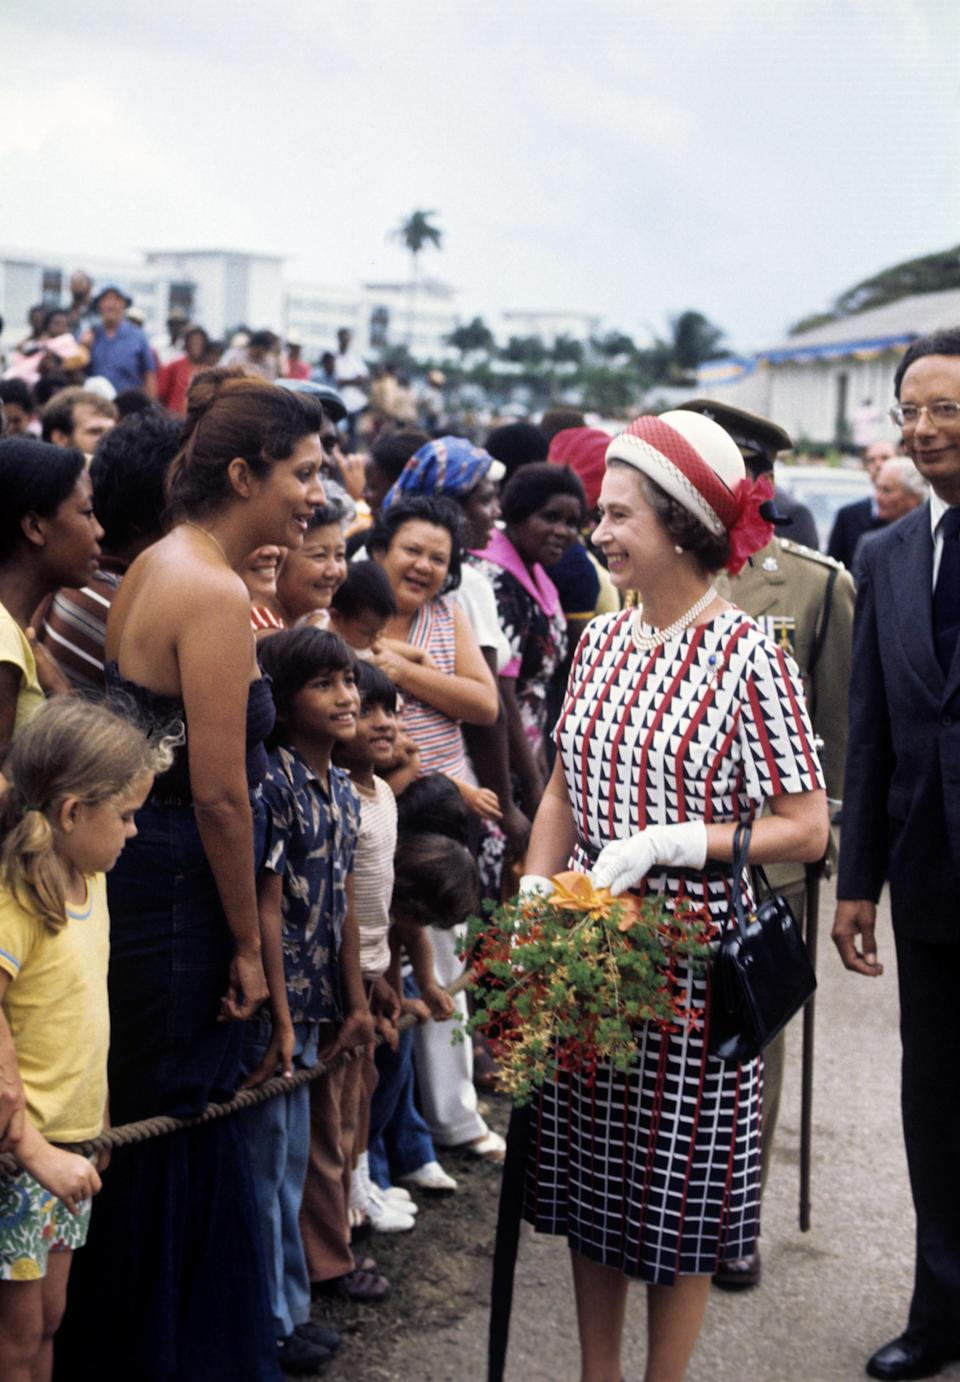 The Queen on a walkabout in Bridgetown, Barbados, during her Silver Jubilee tour of the Caribbean in 1977. (PA Images)